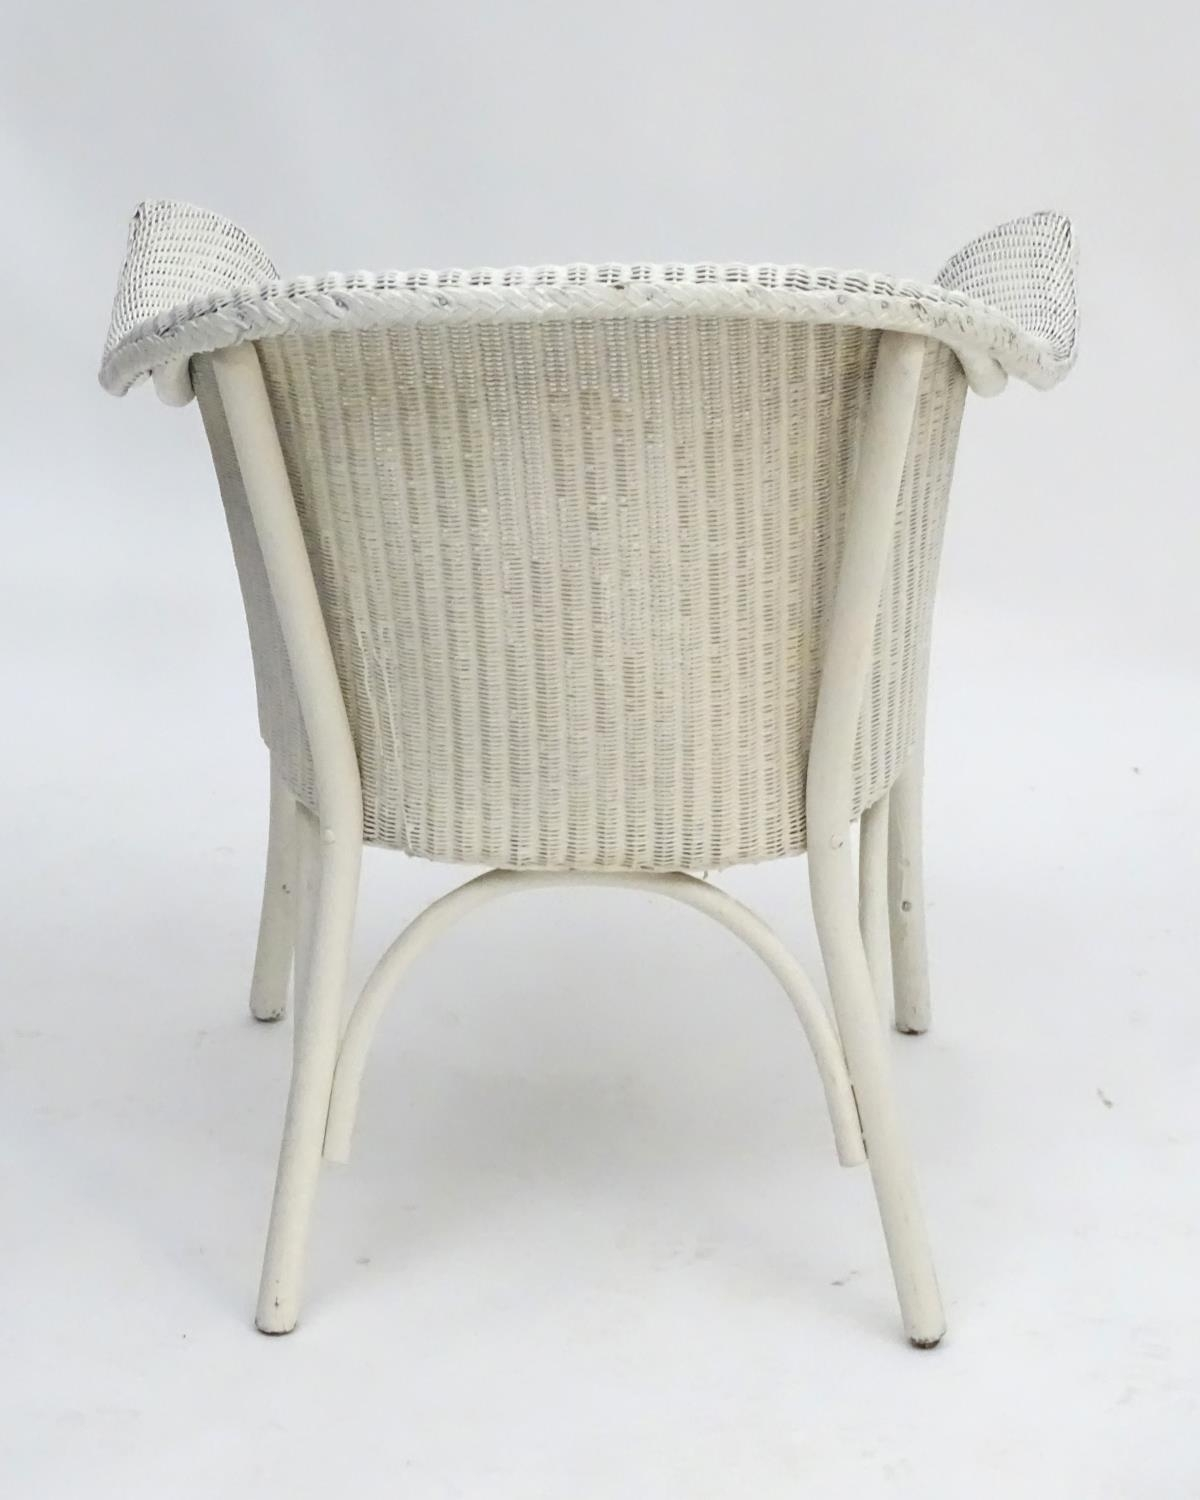 An early 20thC LLoyd loom armchair with a white painted bentwood frame. Bearing label to underneath. - Image 5 of 6